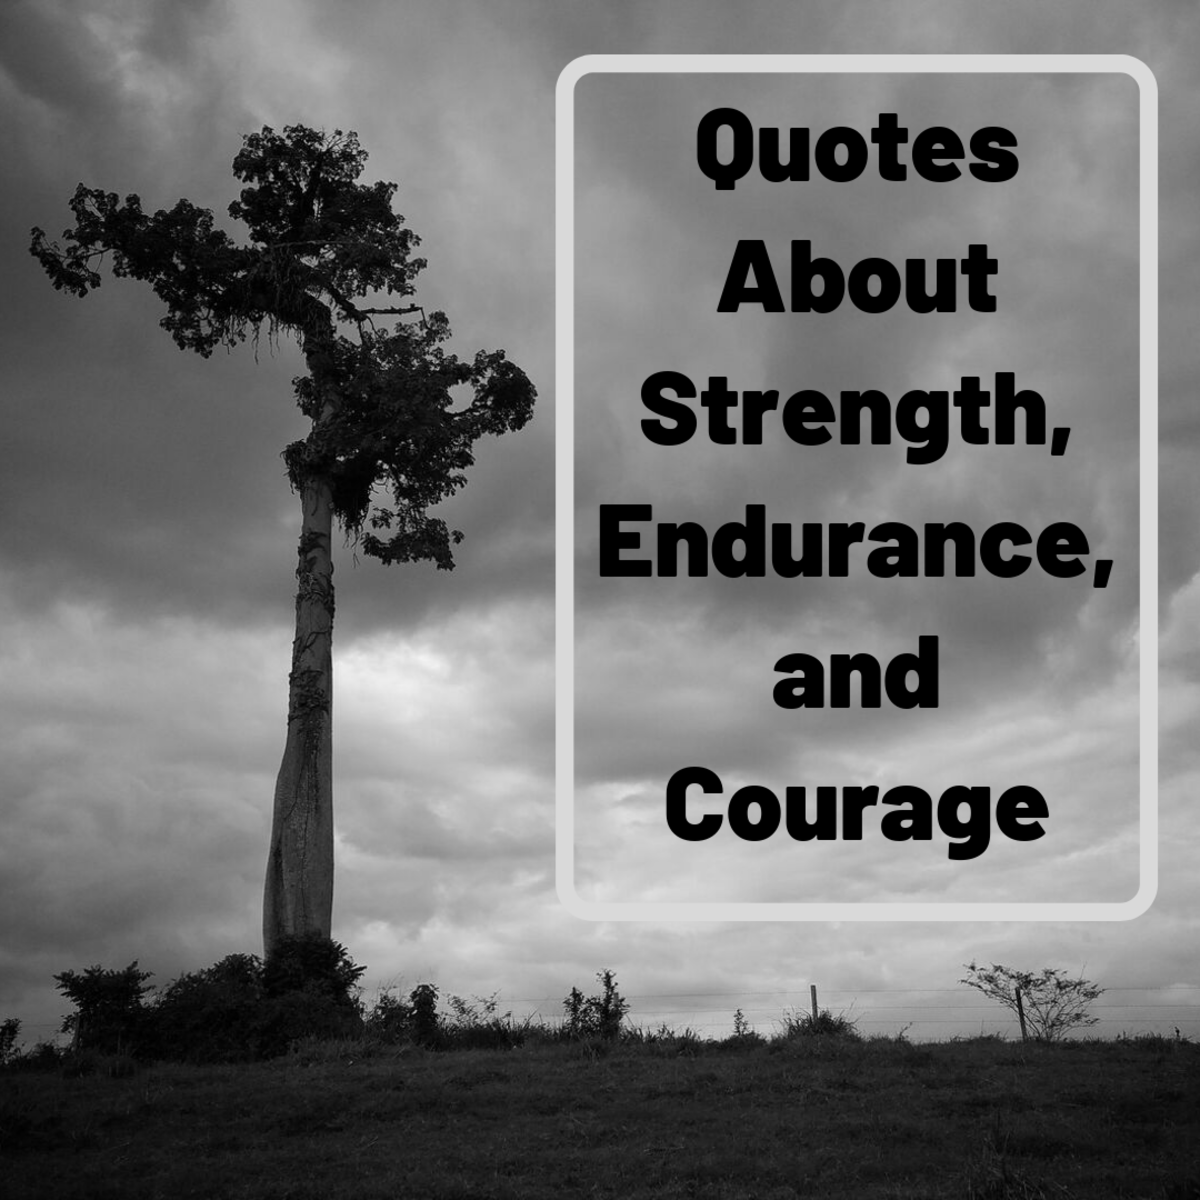 My Favorite Quotes About Strength, Courage, and Not Giving Up